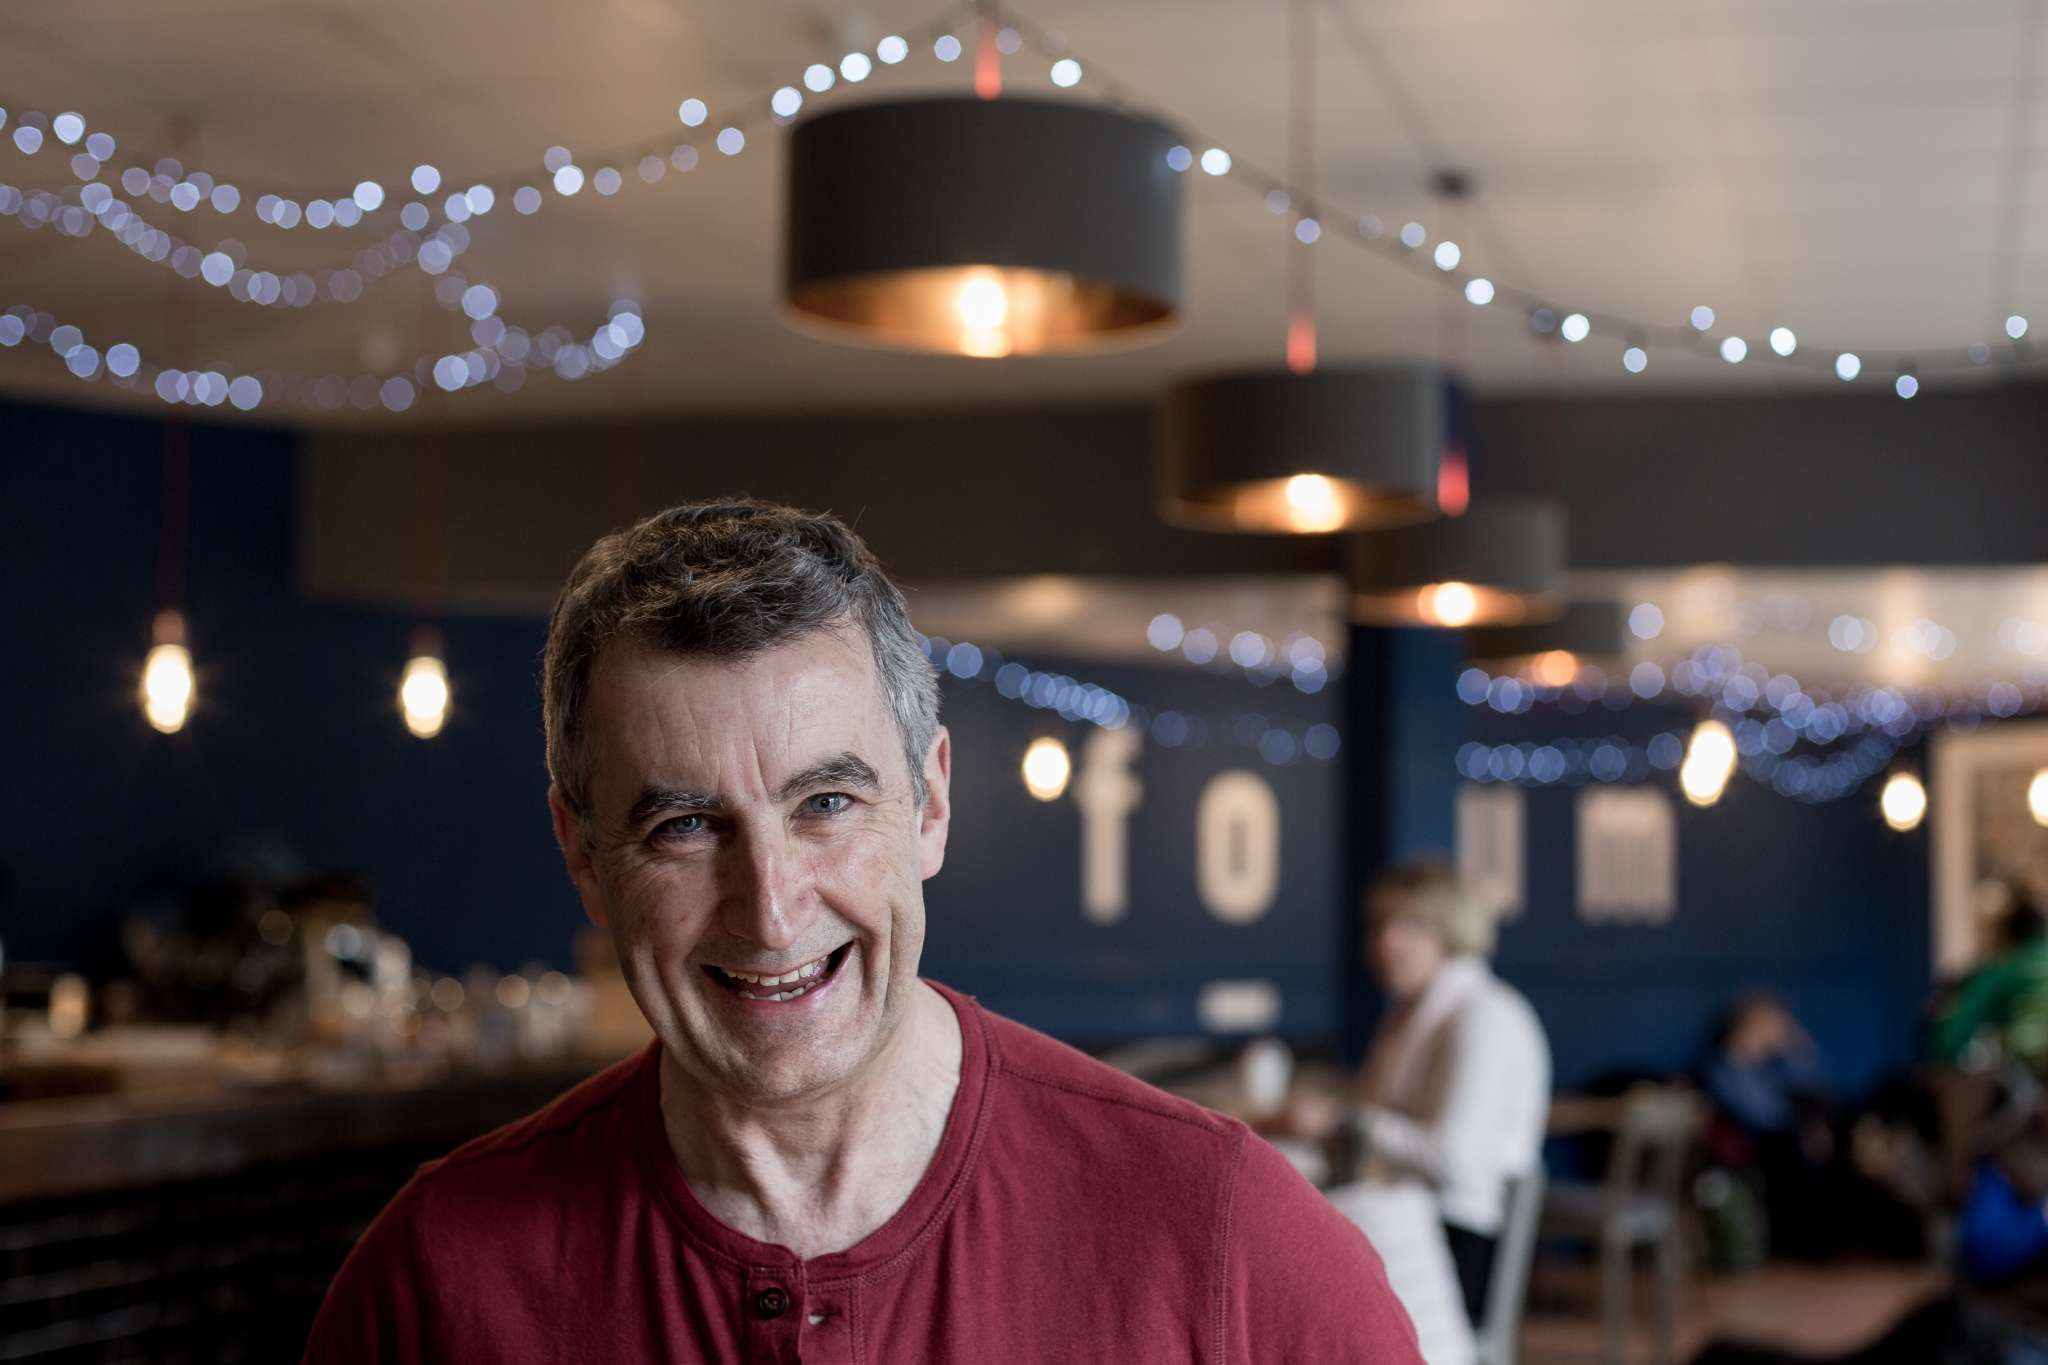 A headshot portrait photo of a man in a cafe in Chichester